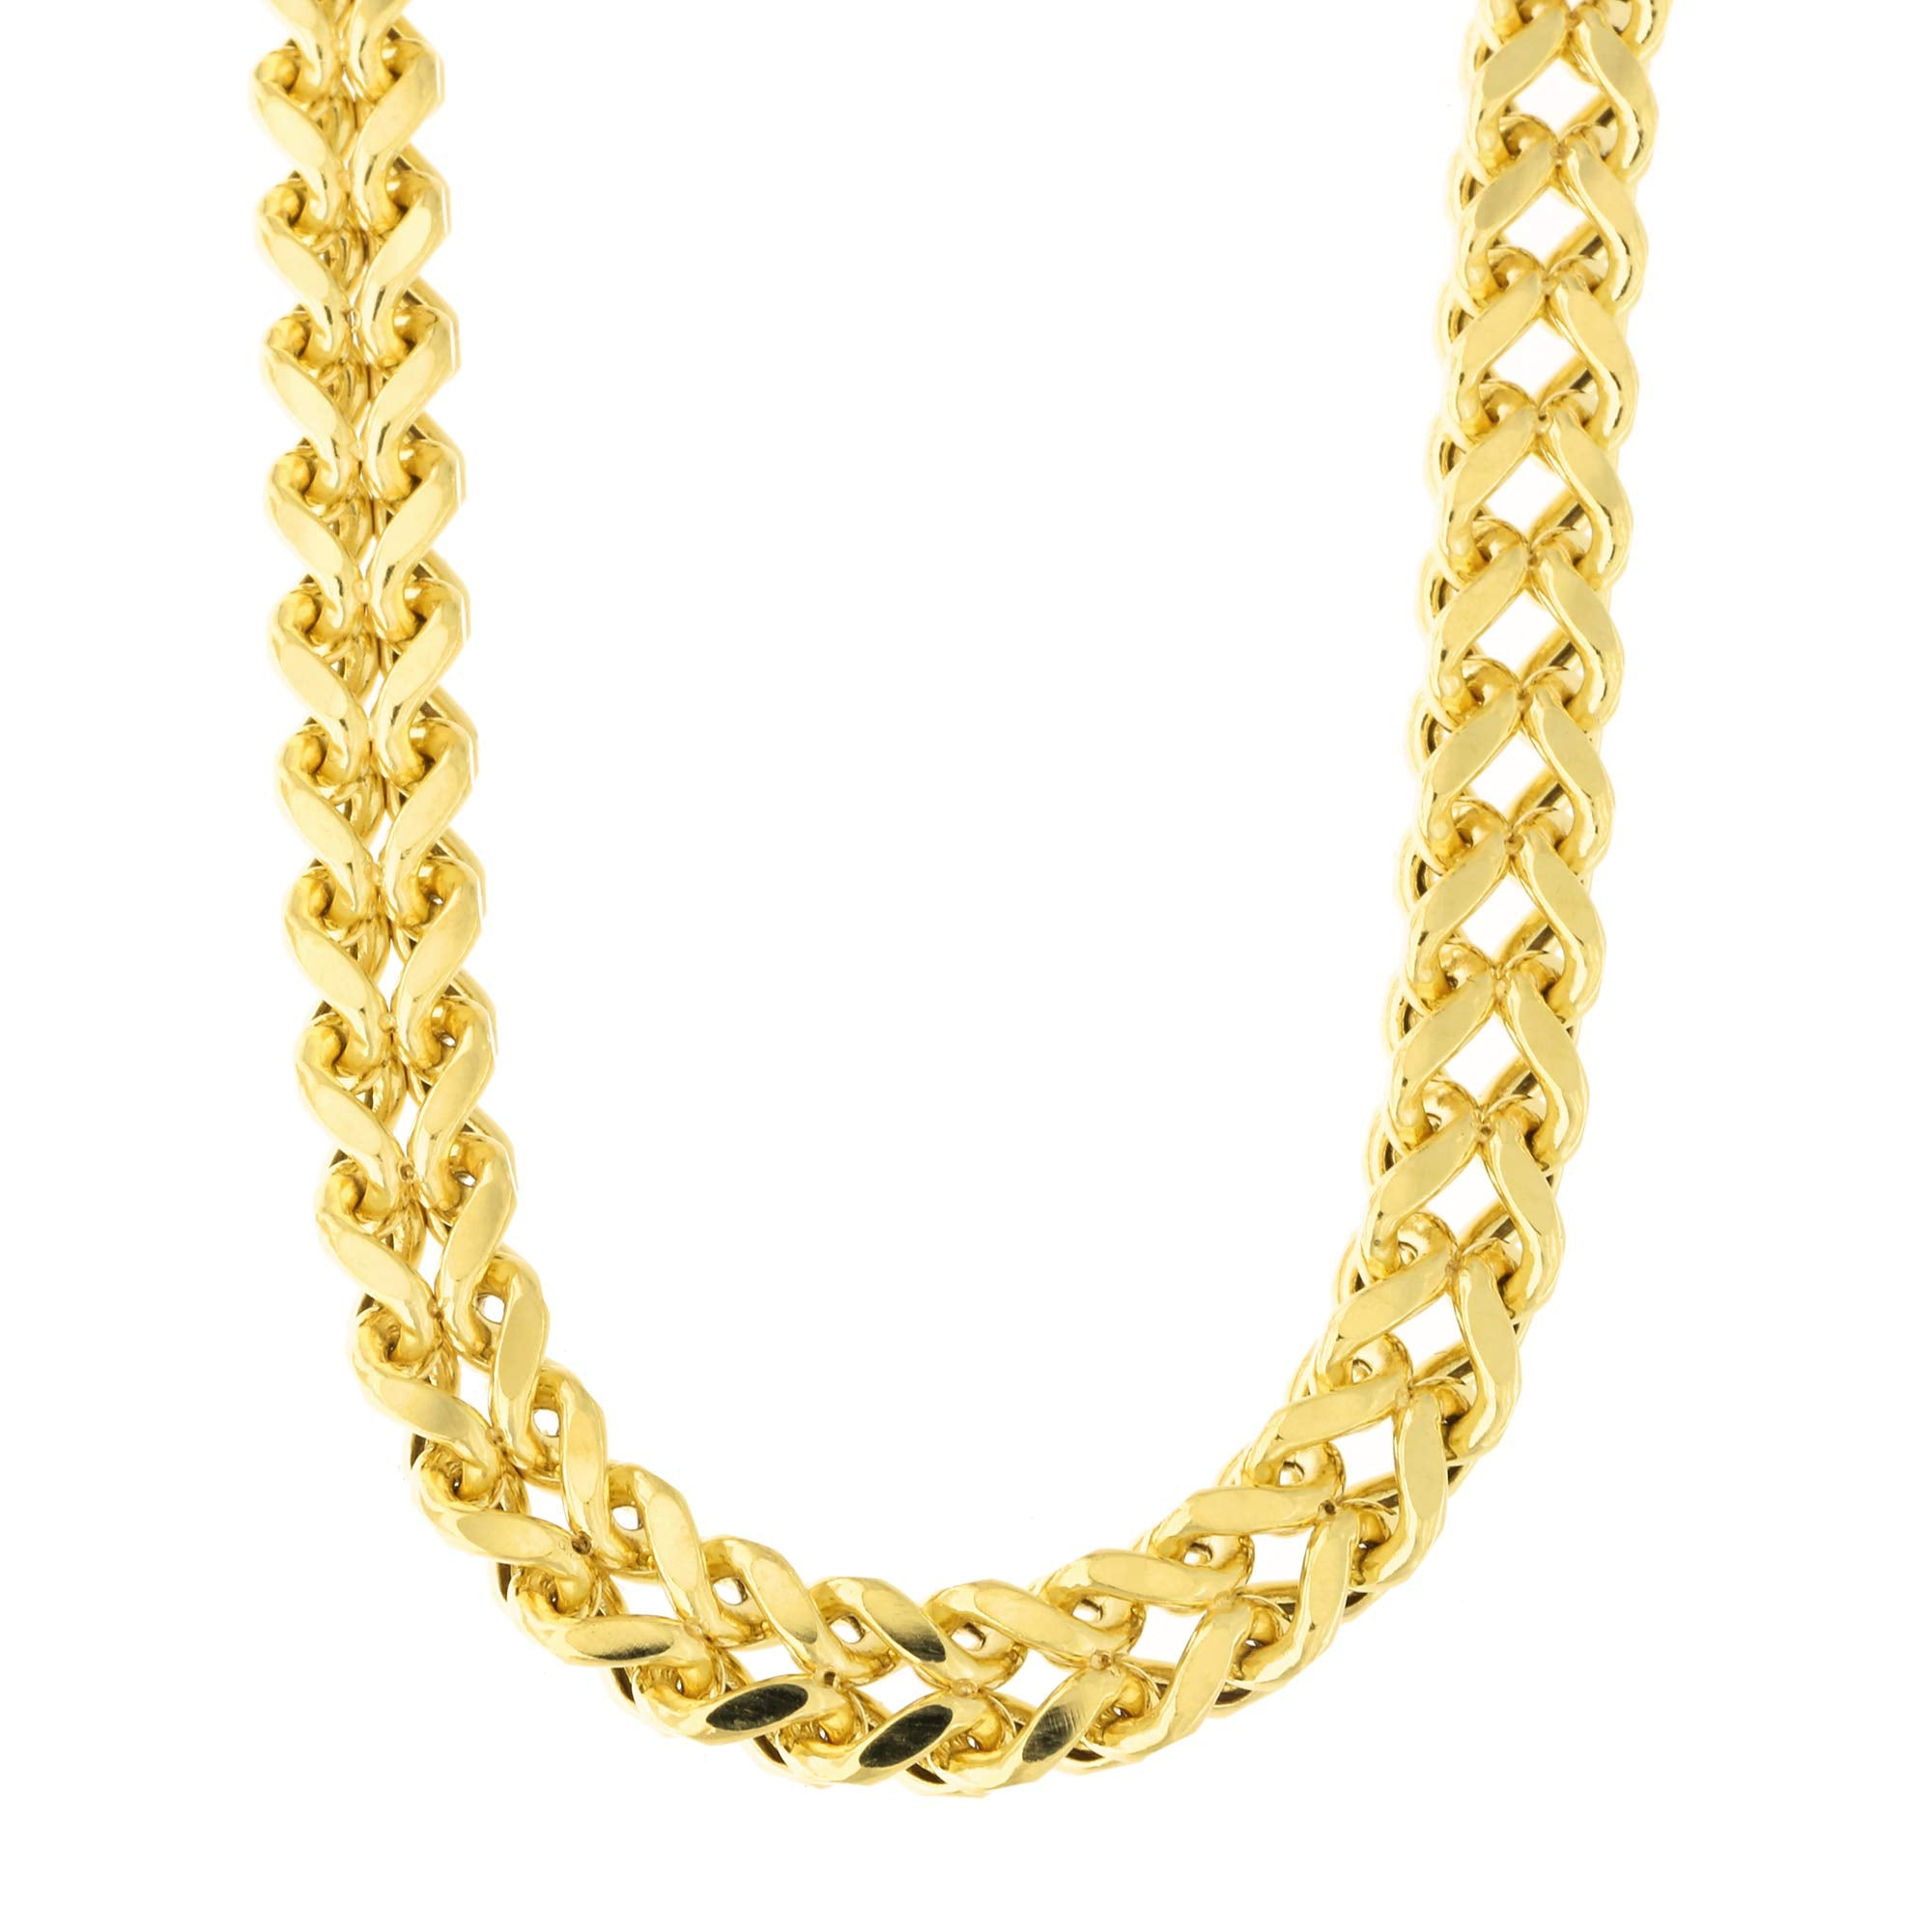 7ff339dc89343 Men's 14k Yellow Gold Lightweight 6.4mm Diamond Cut Franco Chain Necklace  or Bracelet